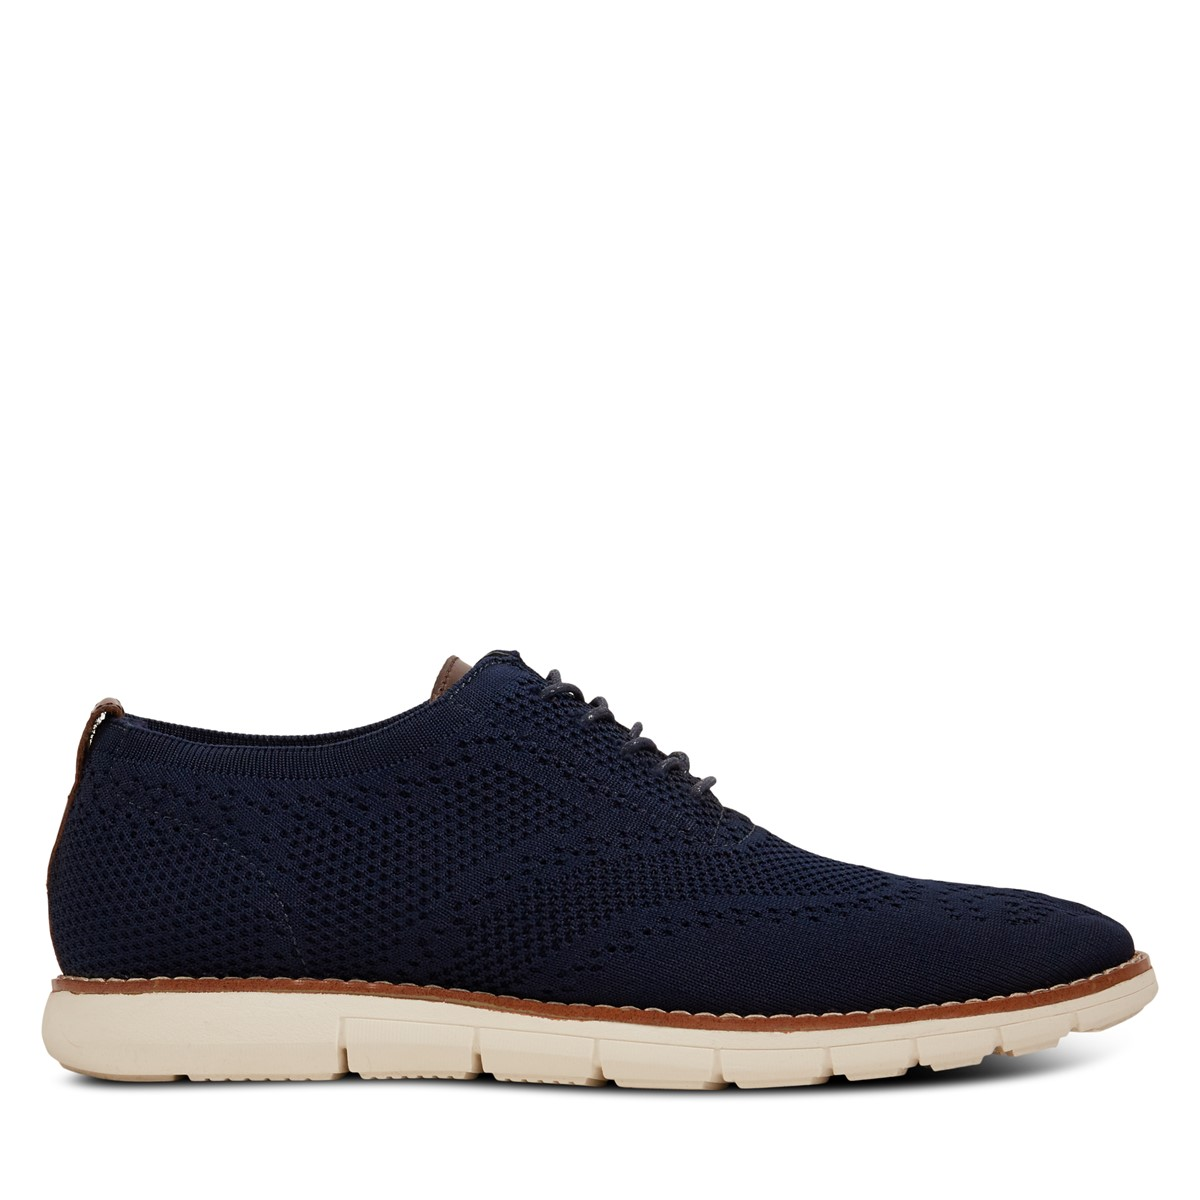 Men's James Lace-up Shoes in Navy